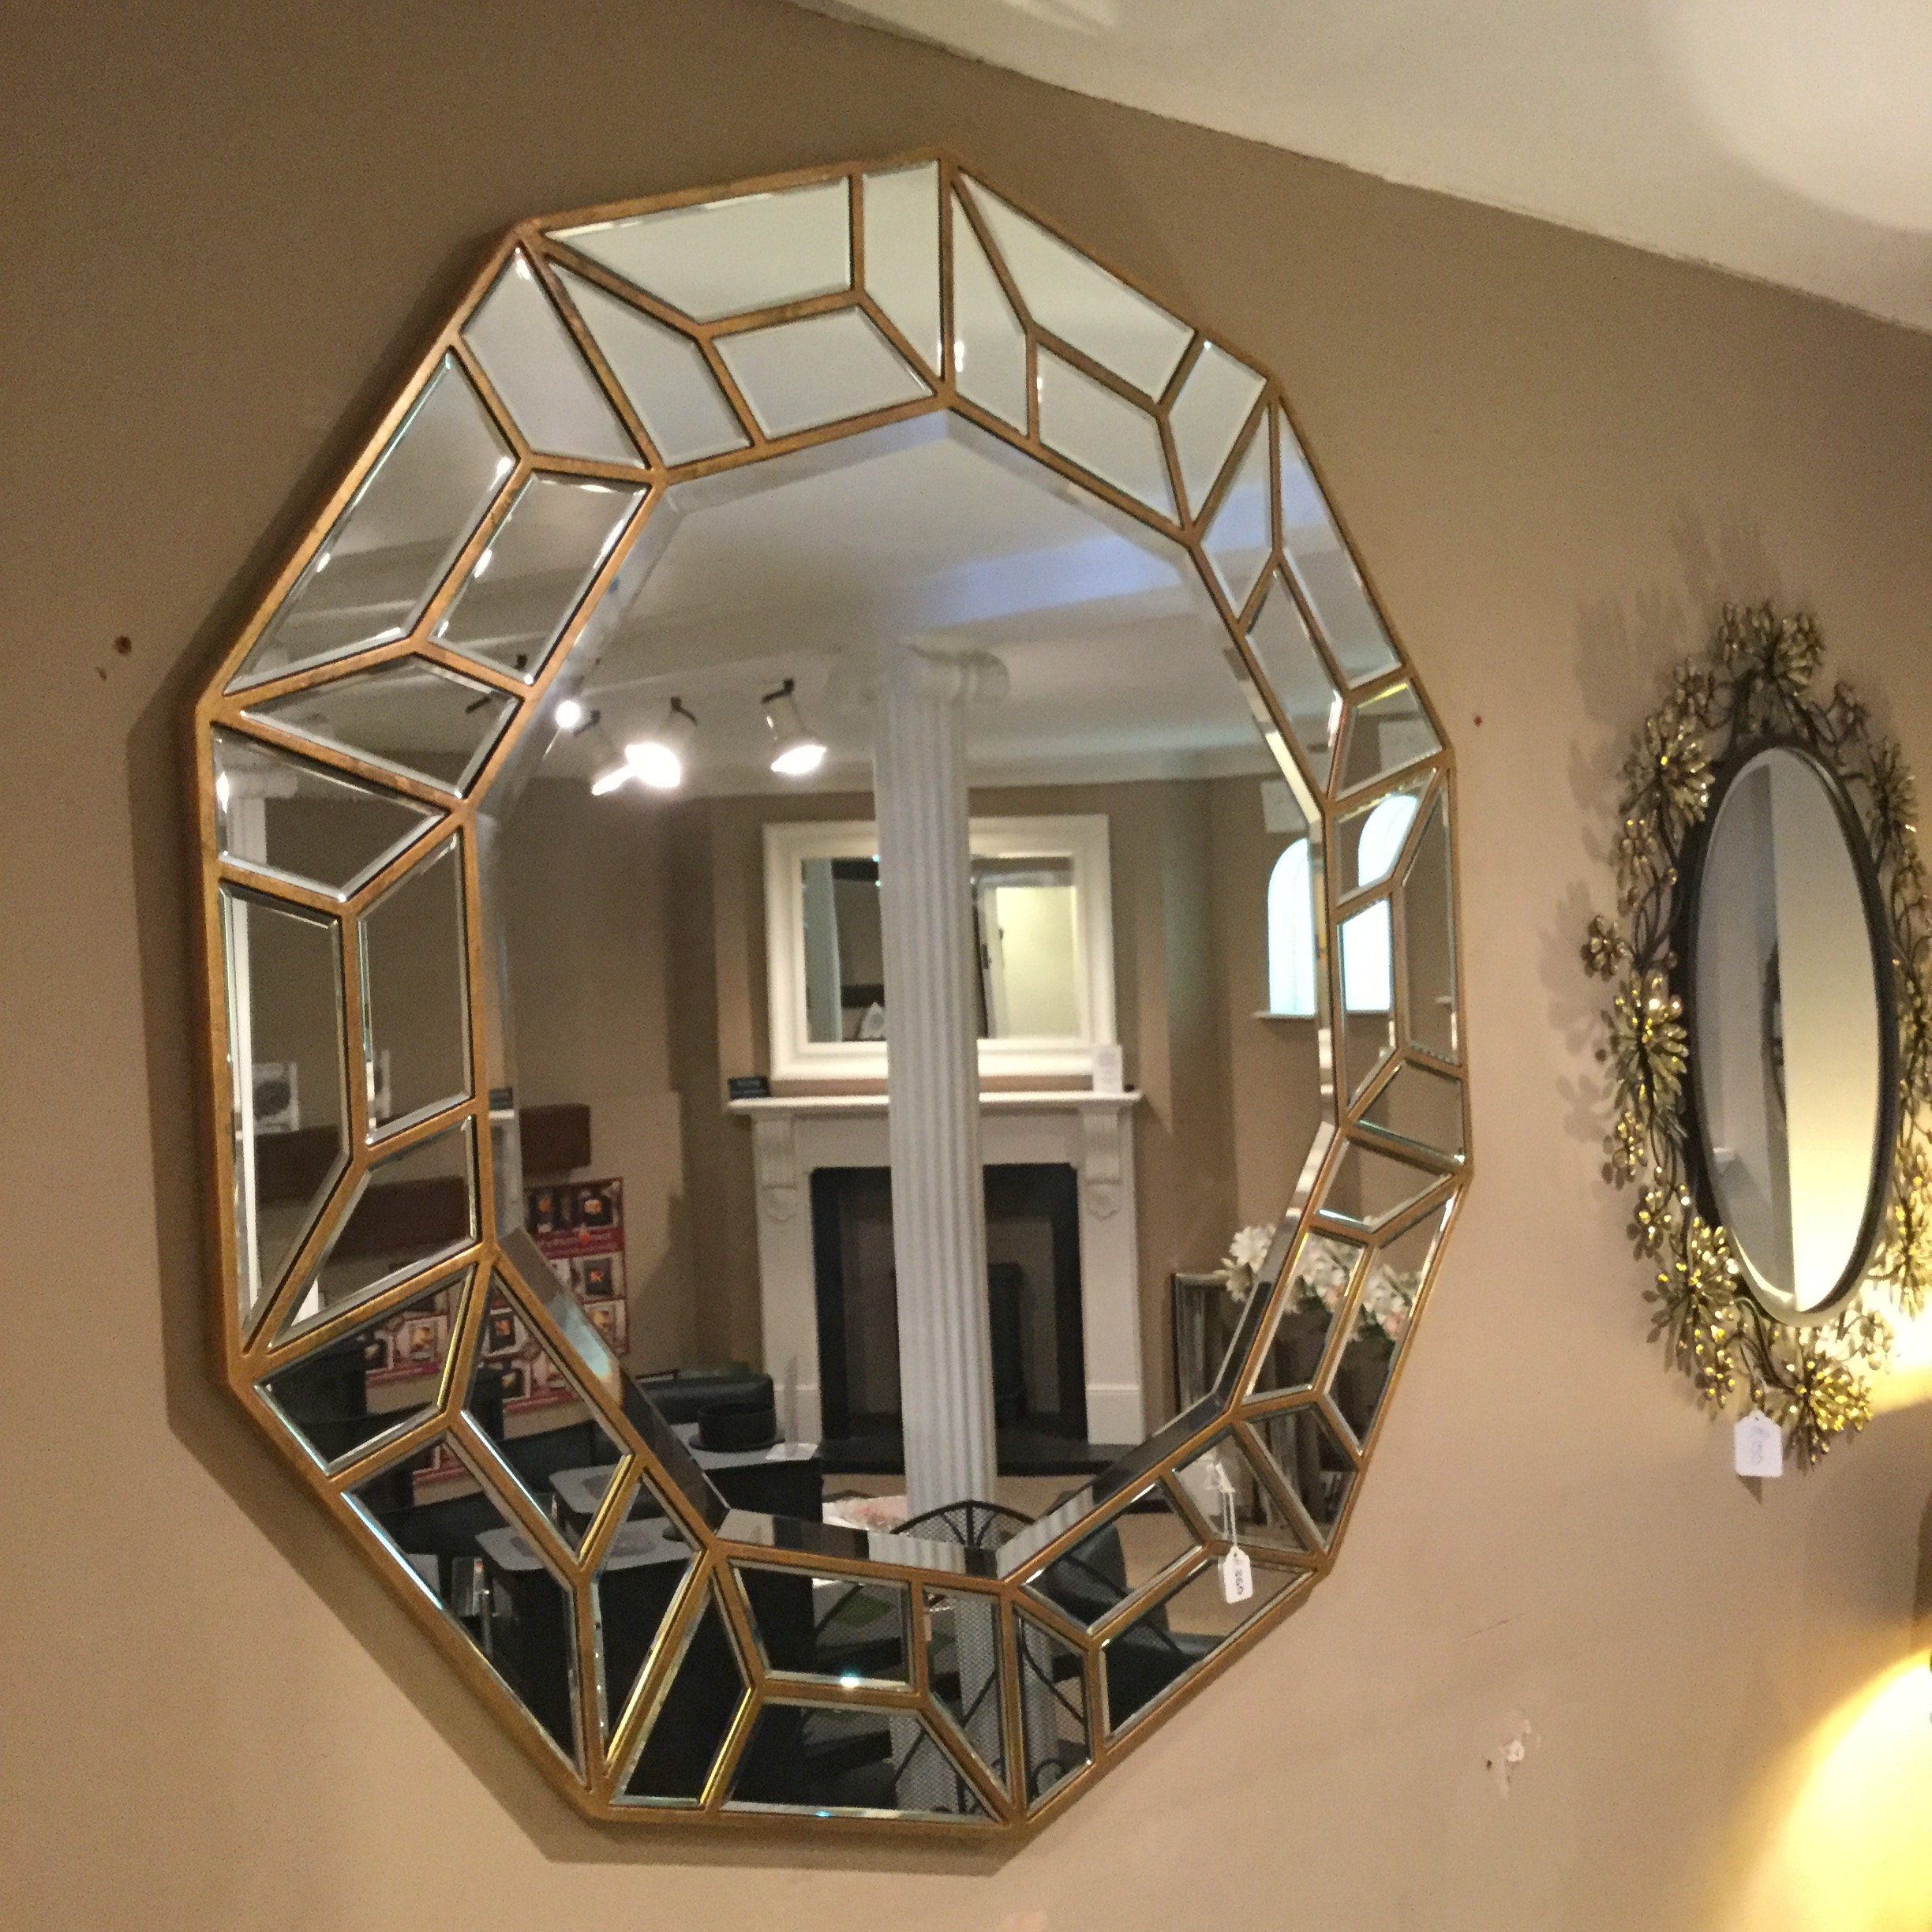 Fireplace Sale Showroom Near Halstead Pertaining To Mirrors For Sale (Image 6 of 15)